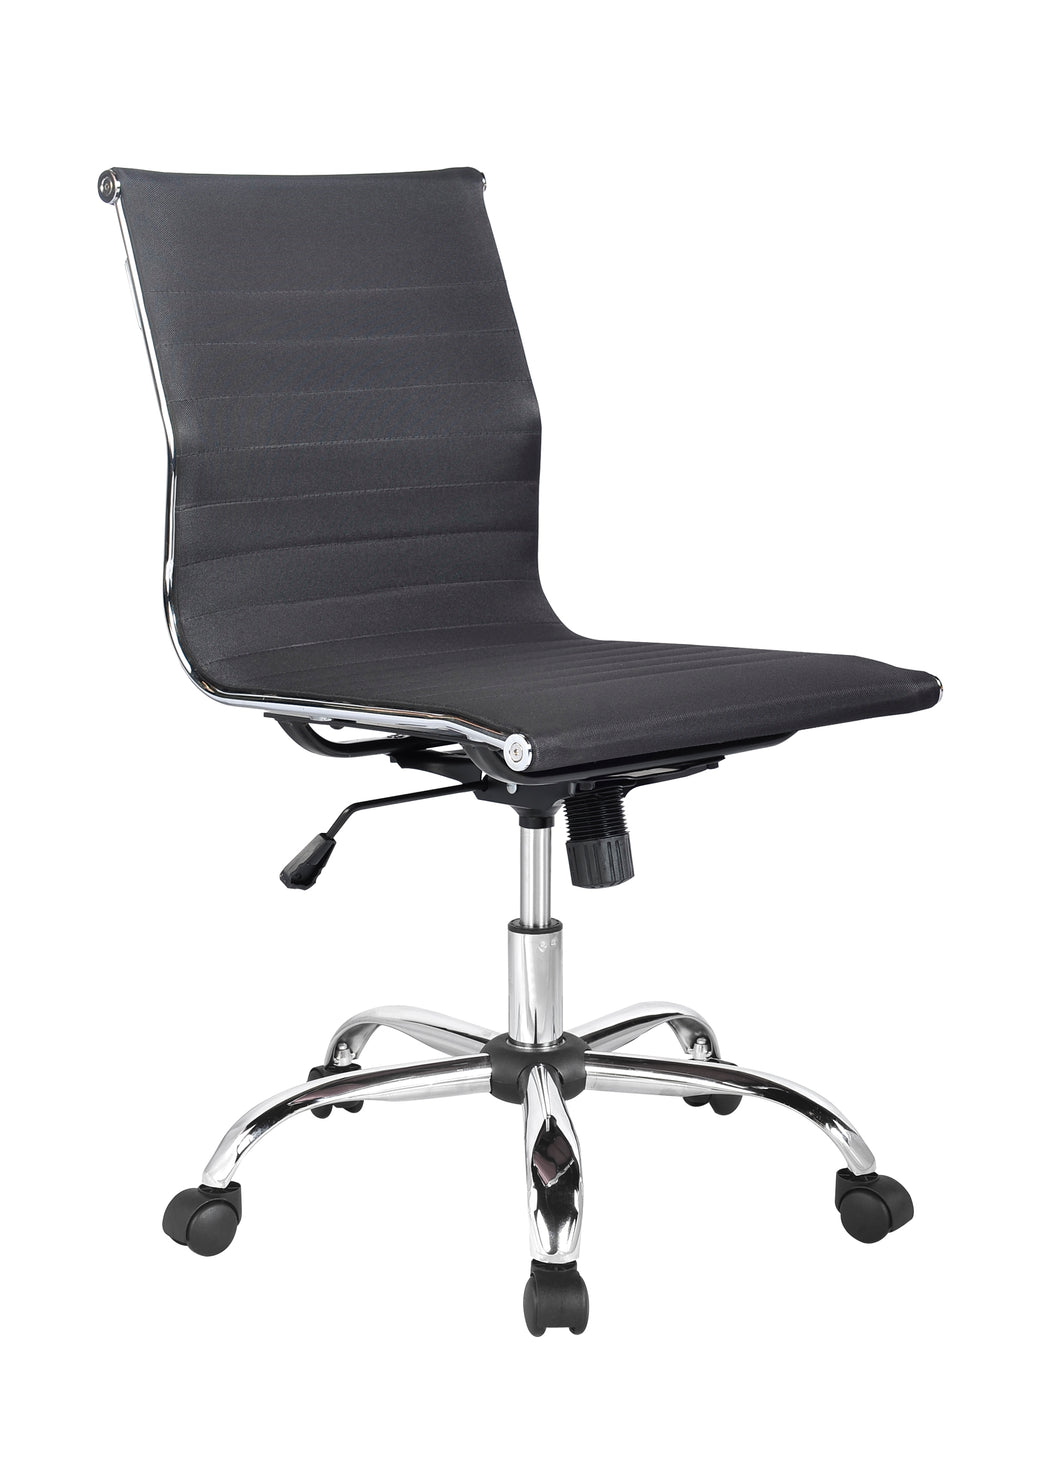 Winport Mid-Back Fabric Armless  Office Desk Chair  TB-5052F